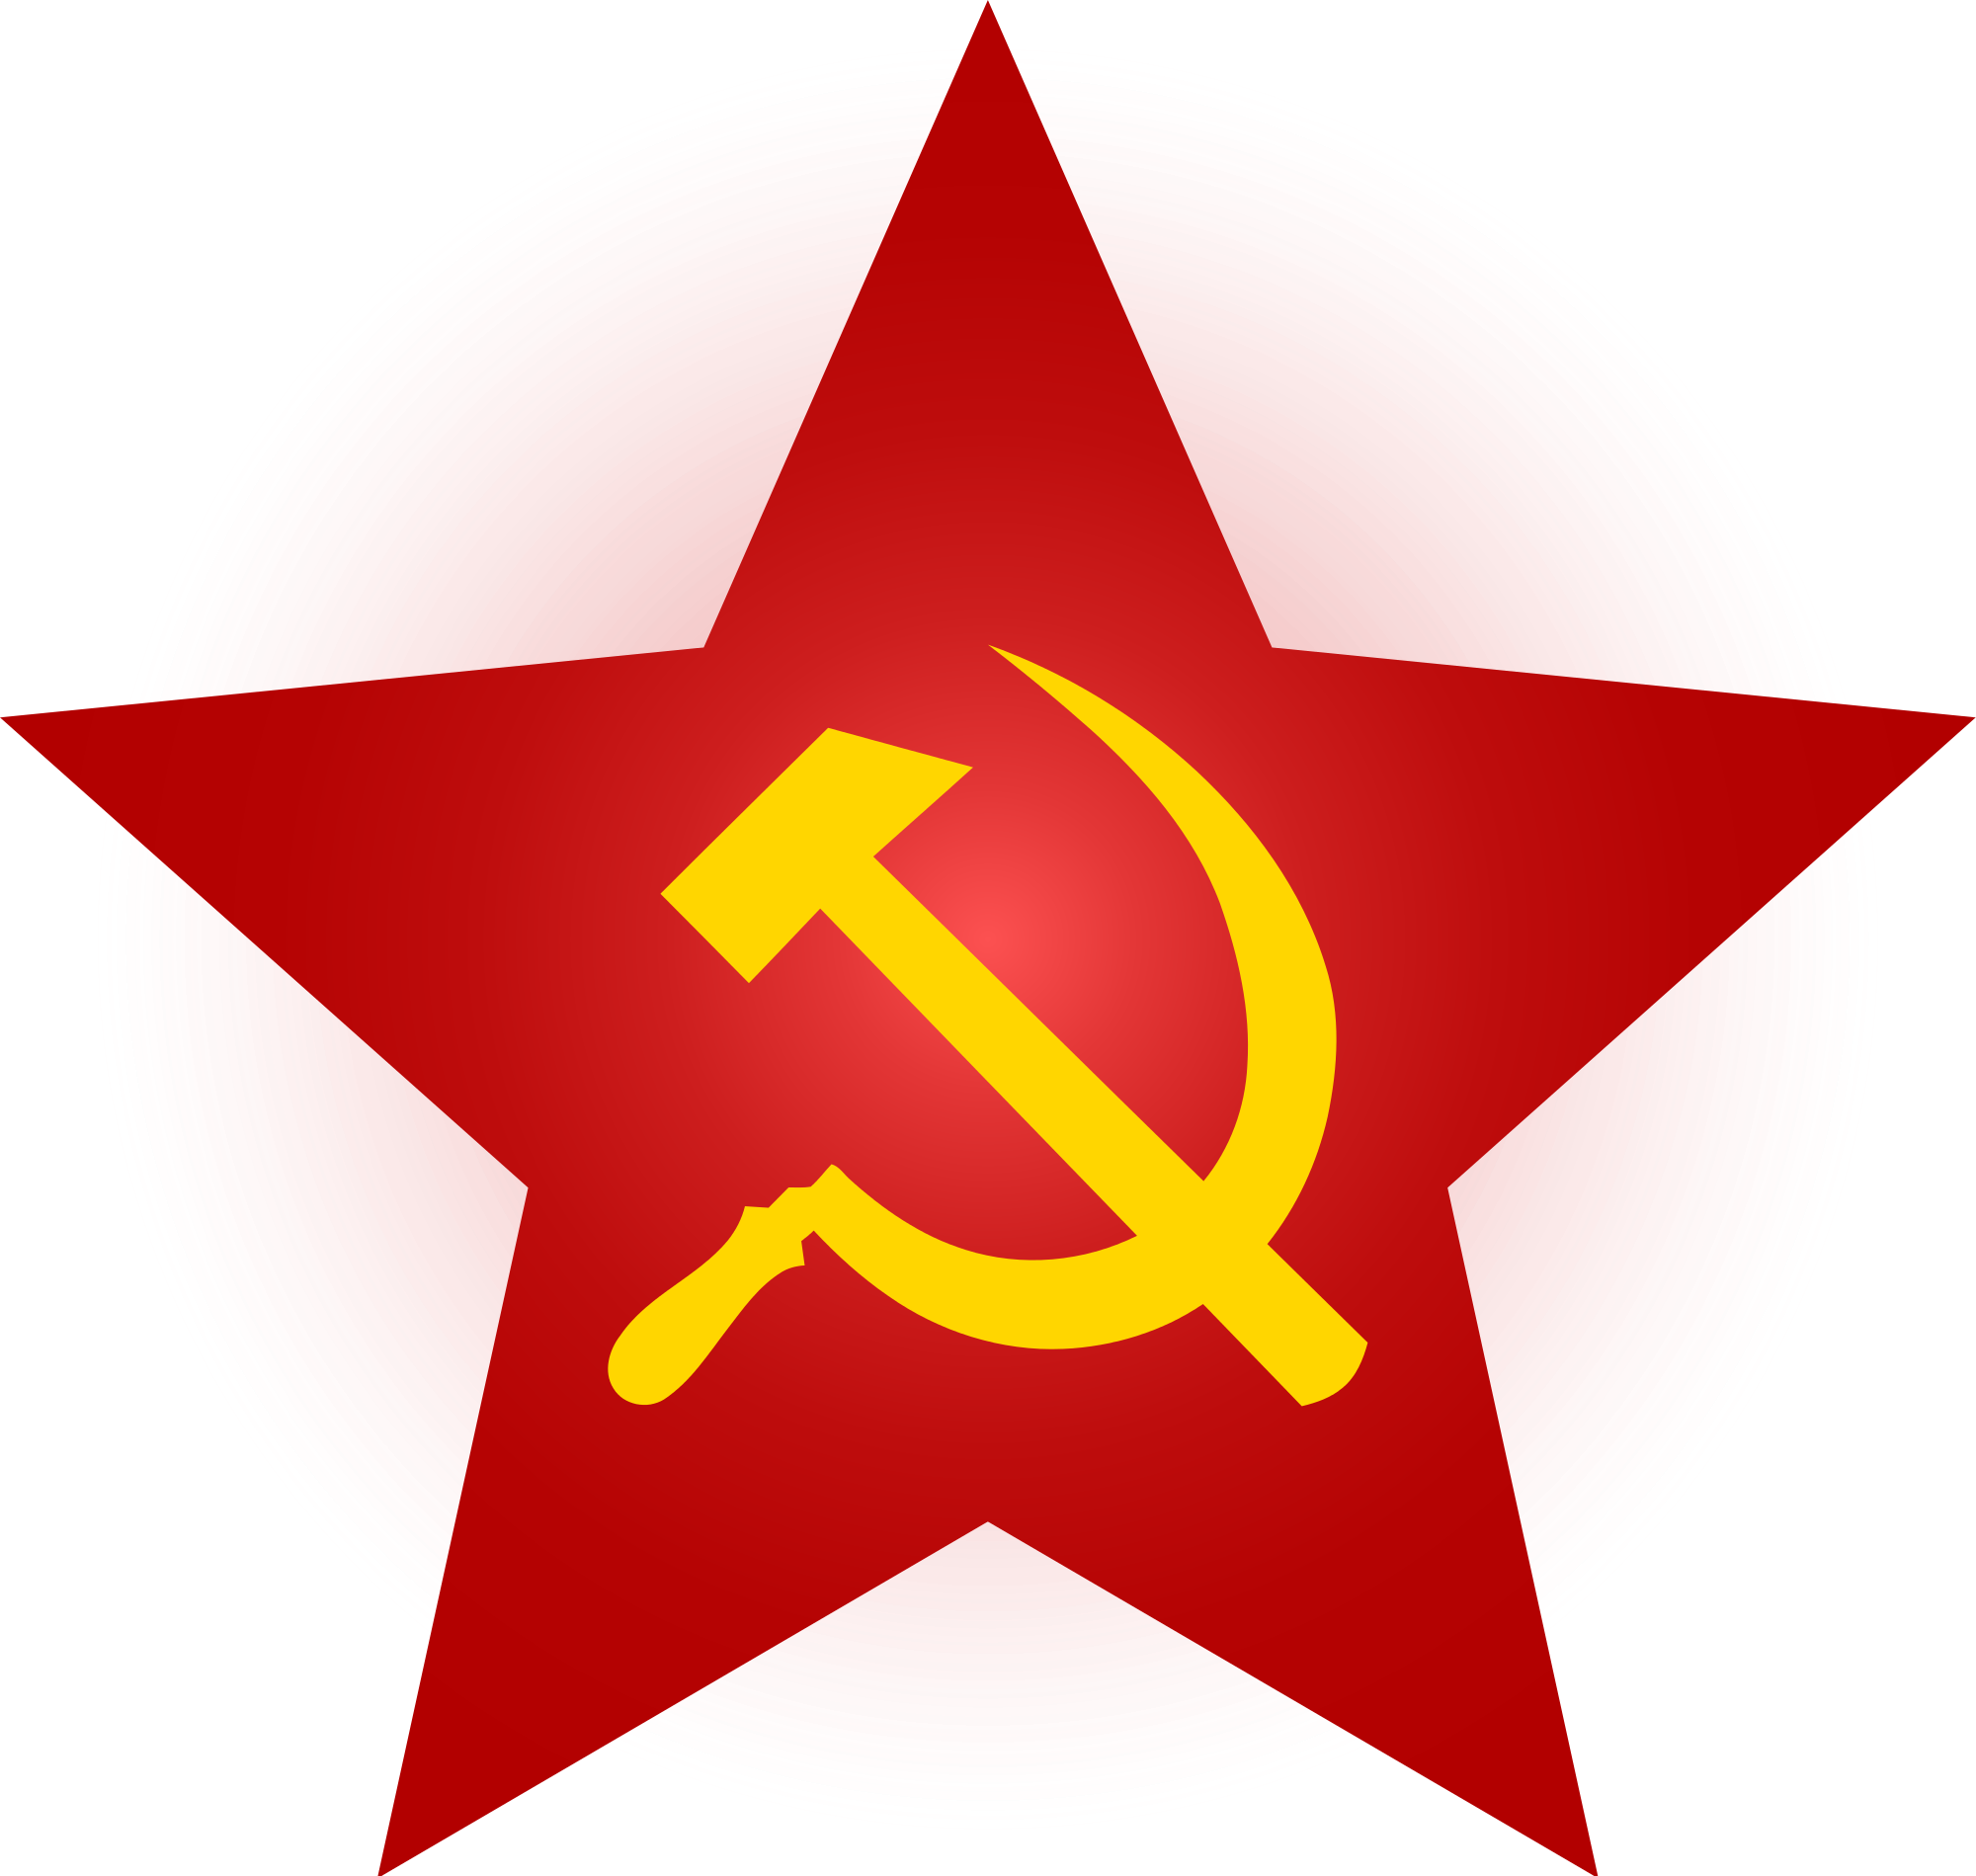 Communist hammer and sickle png. File red star with